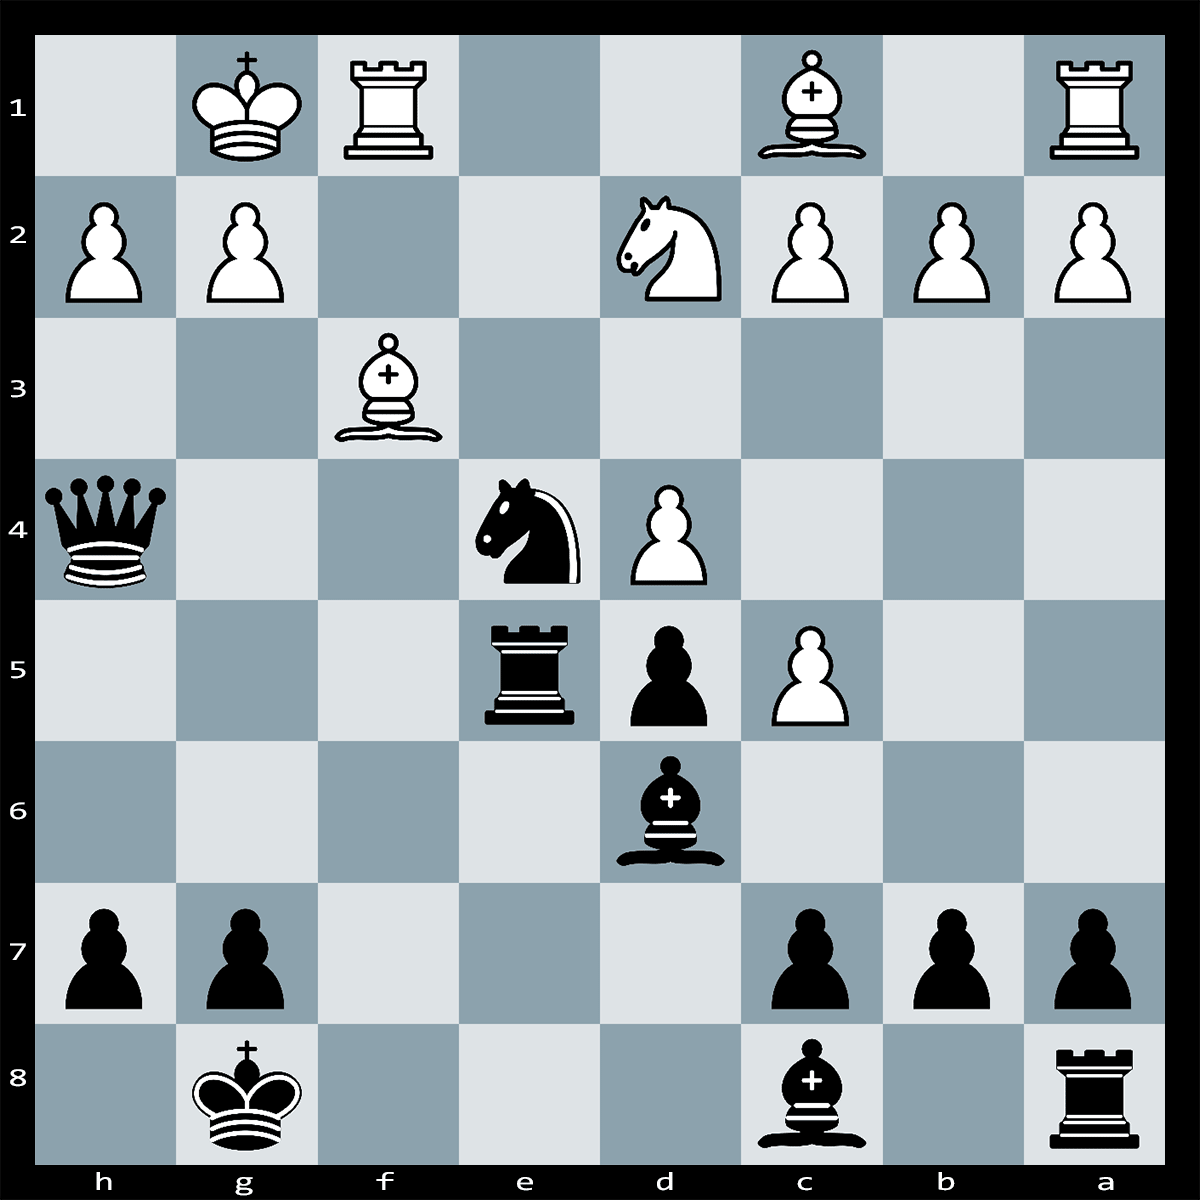 Can you find the winning combination to this puzzle? Black to Play, Mate in 4 Moves.